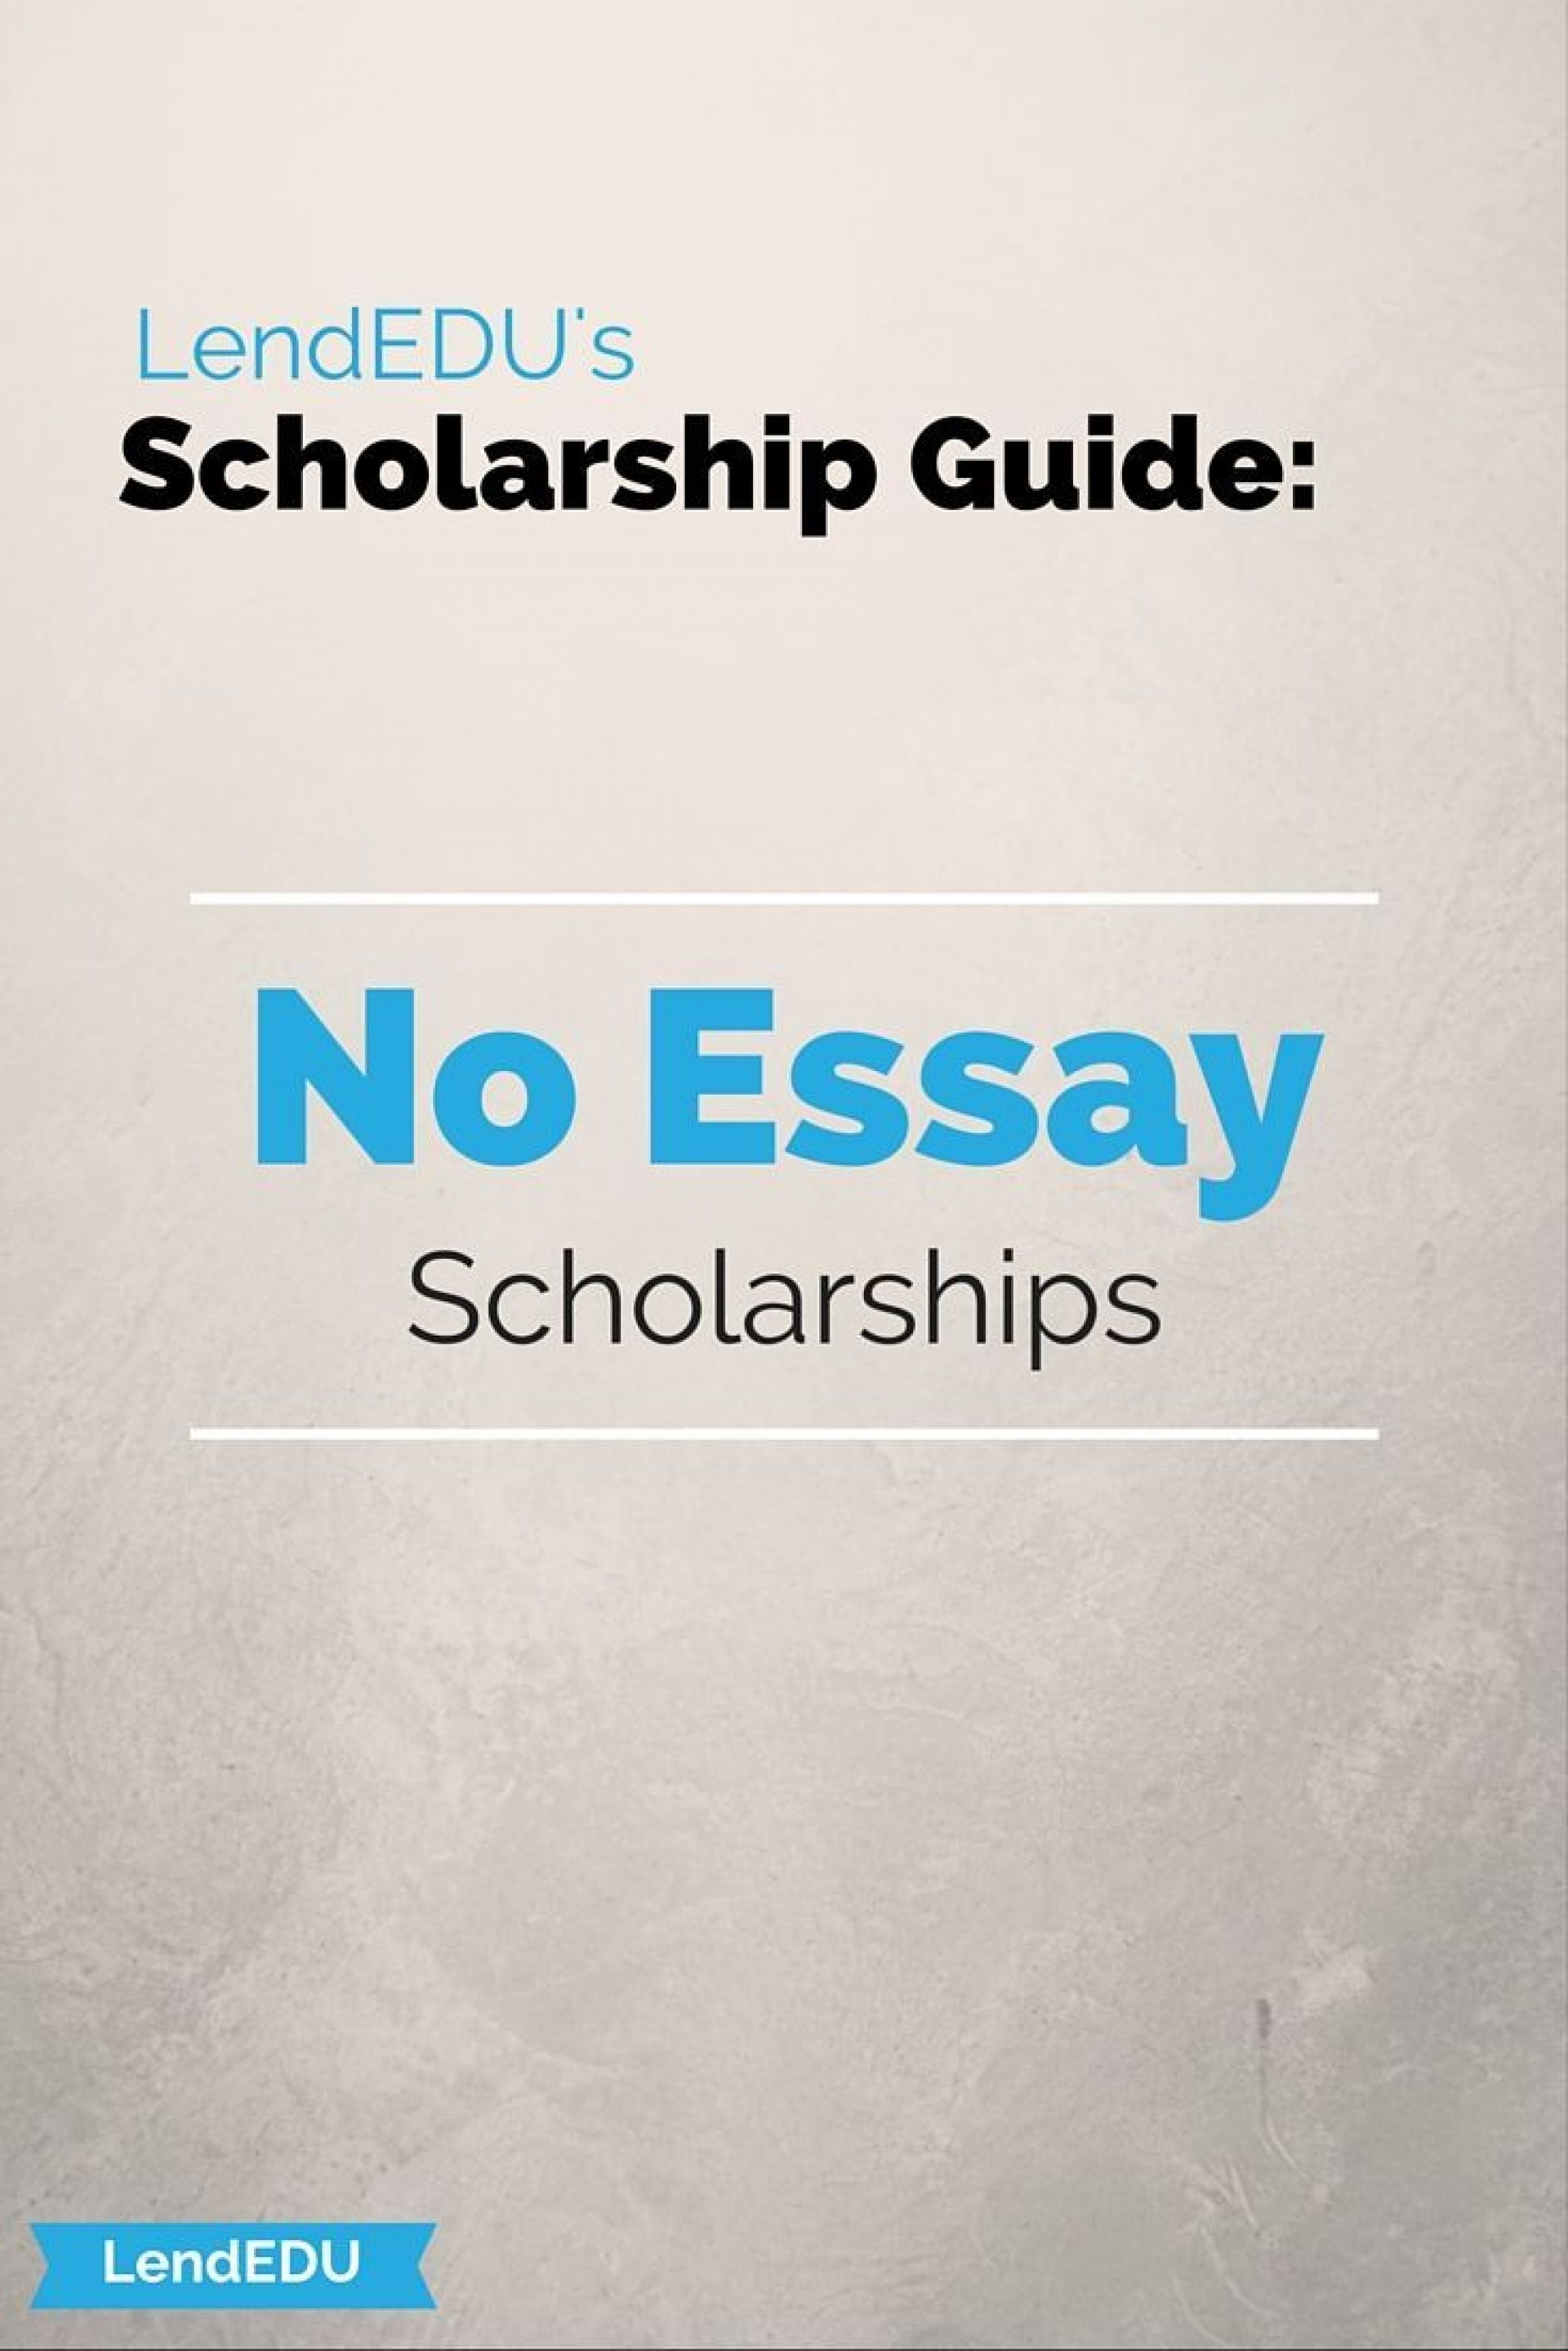 016 Essay Example No Scholarship Wondrous Scholarships 2019 Graduates For High School Seniors Applications 1920